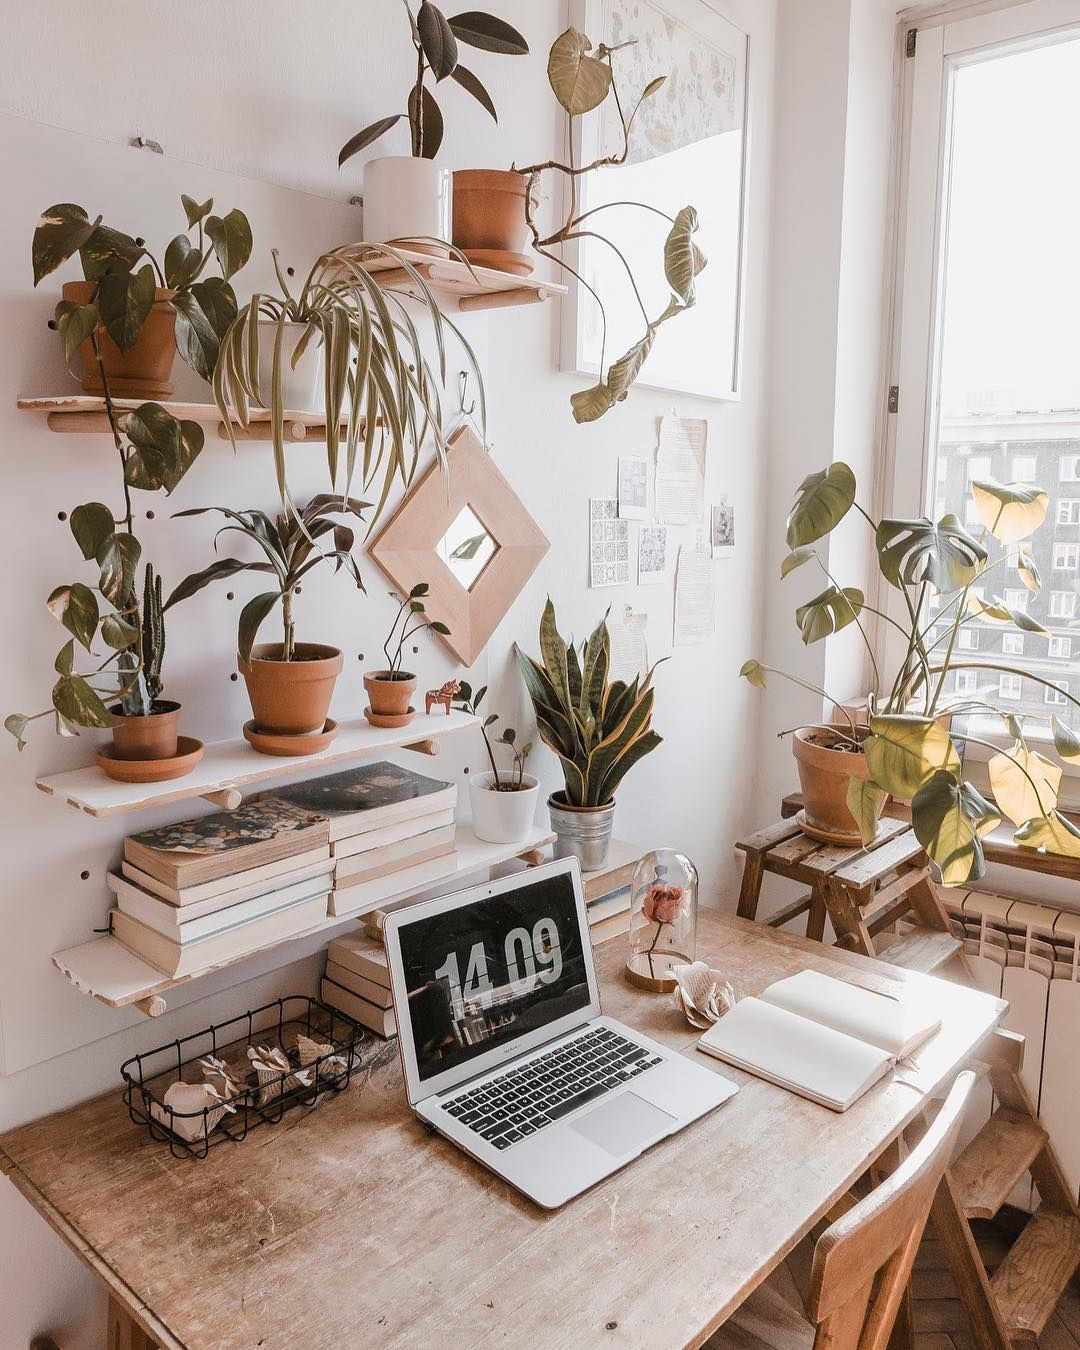 Home office in a cozy natural design full of plants.   Cozy home ...